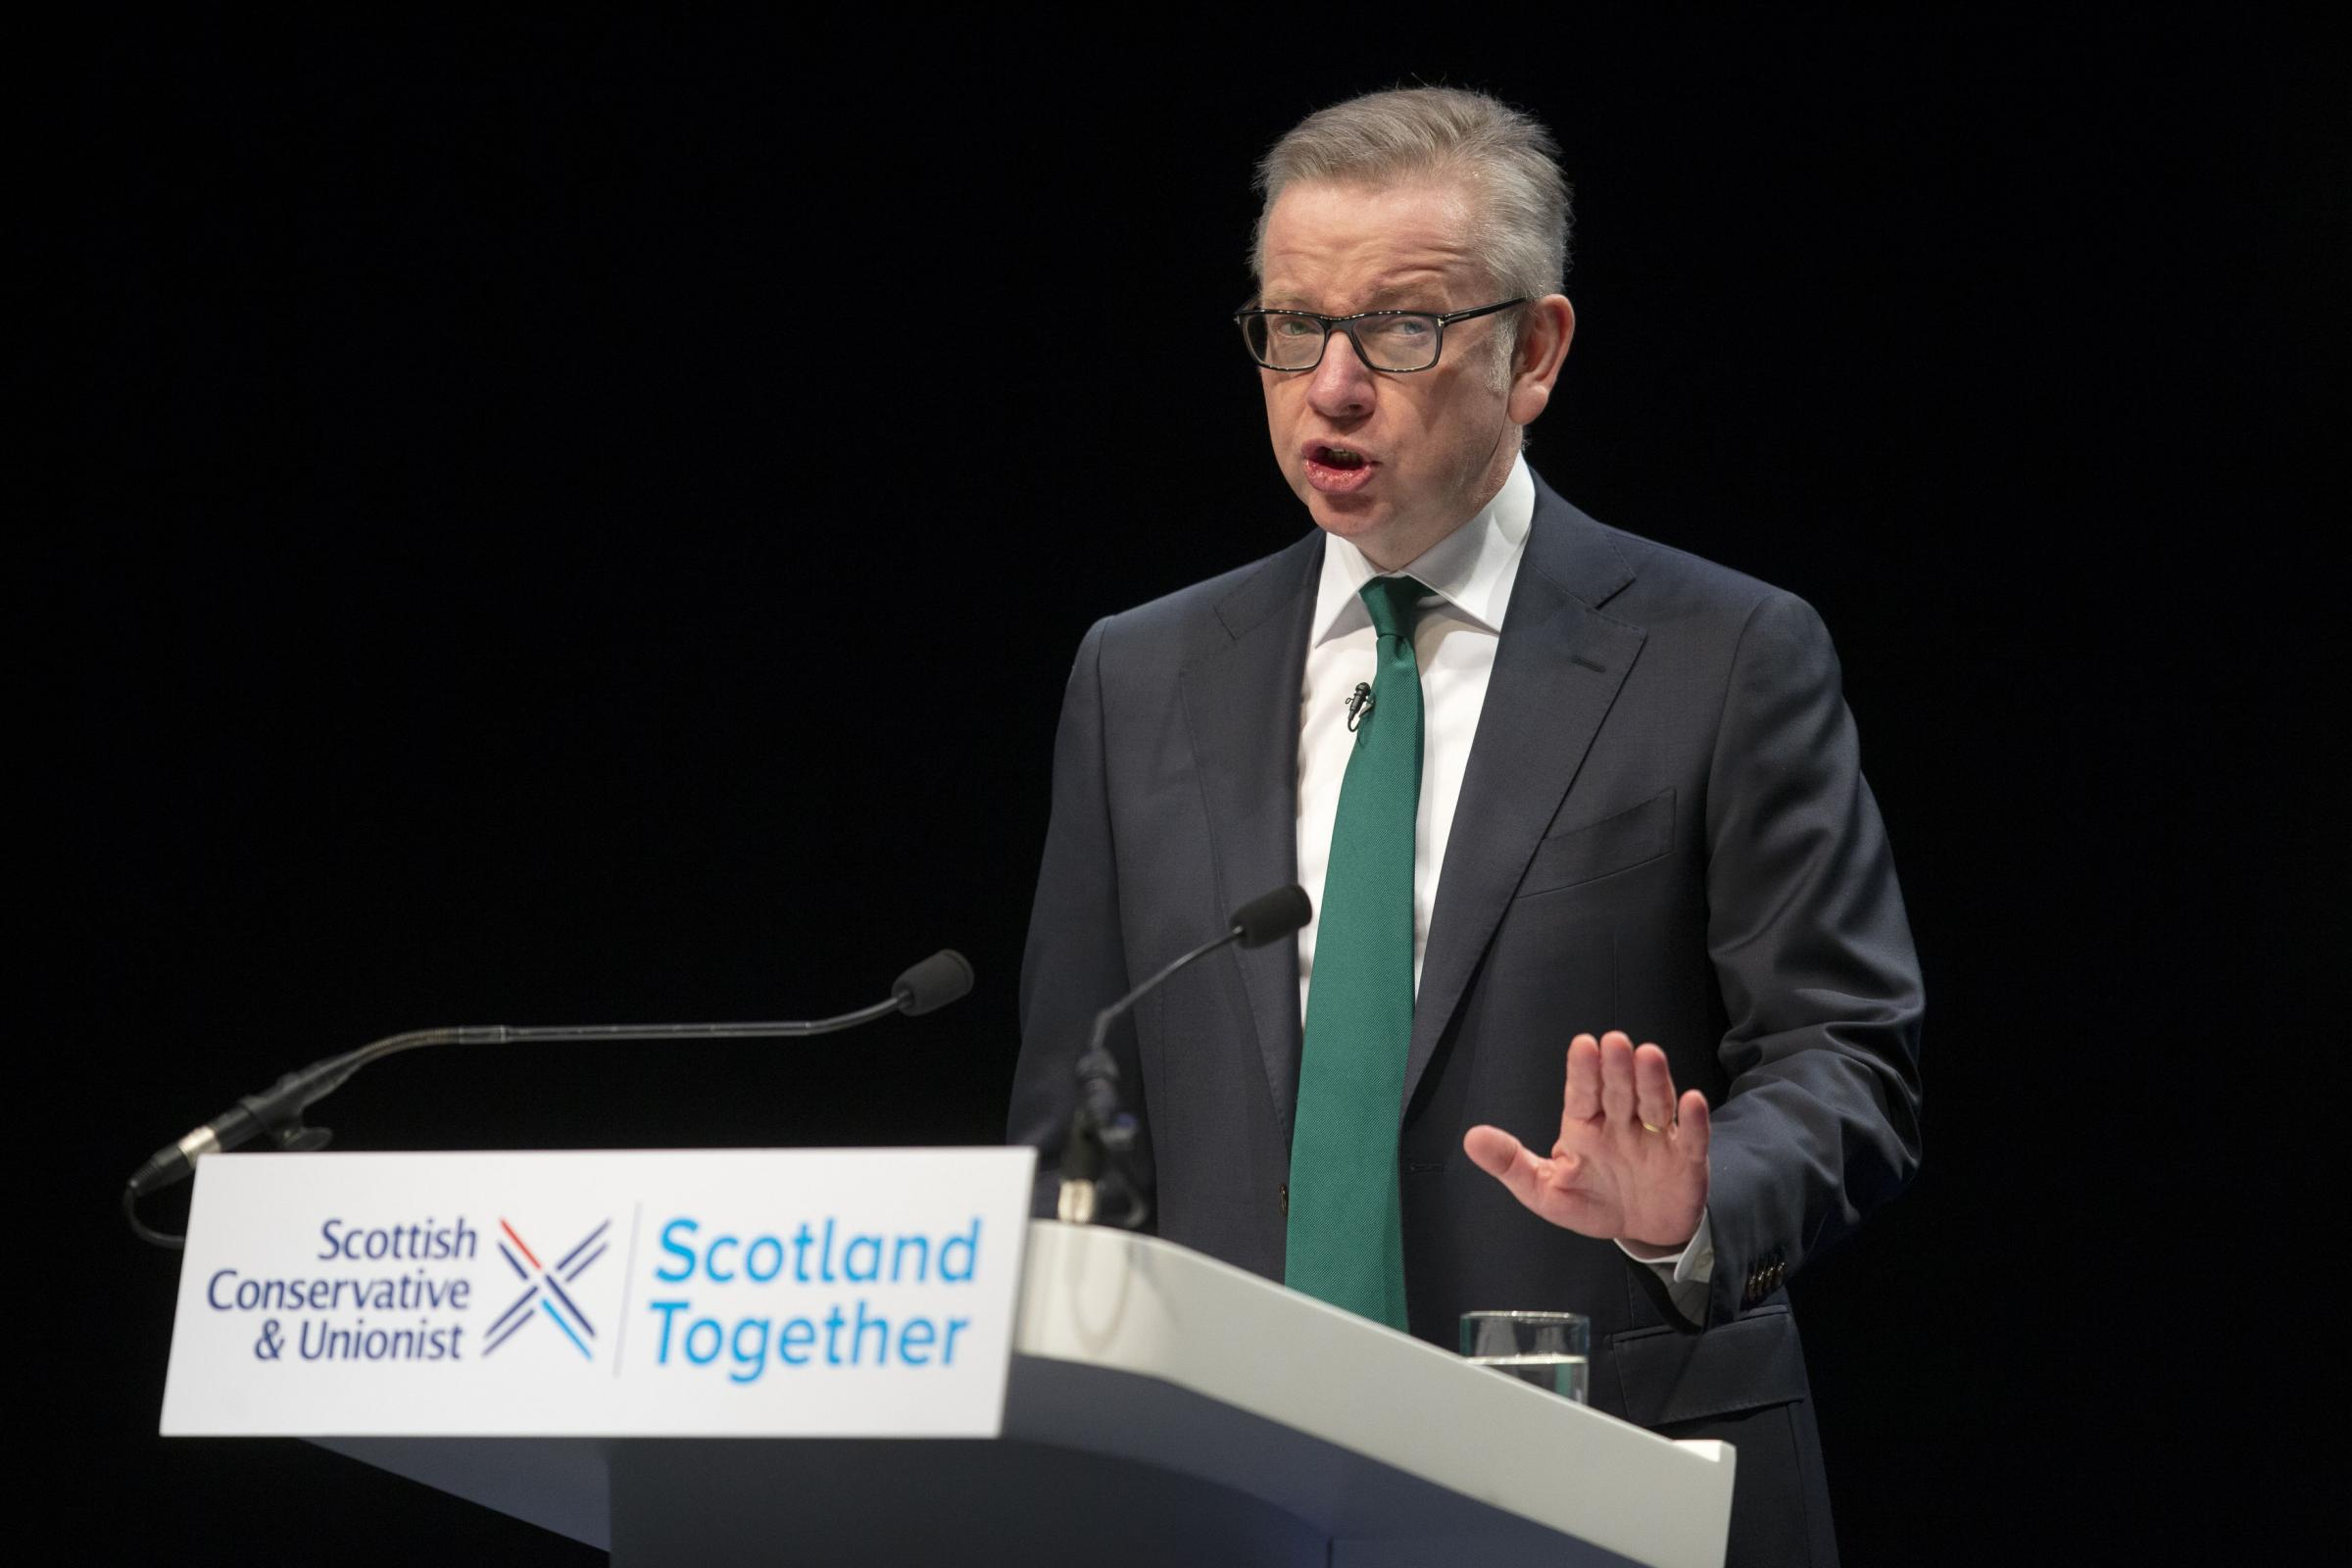 Michael Gove will appear via video link